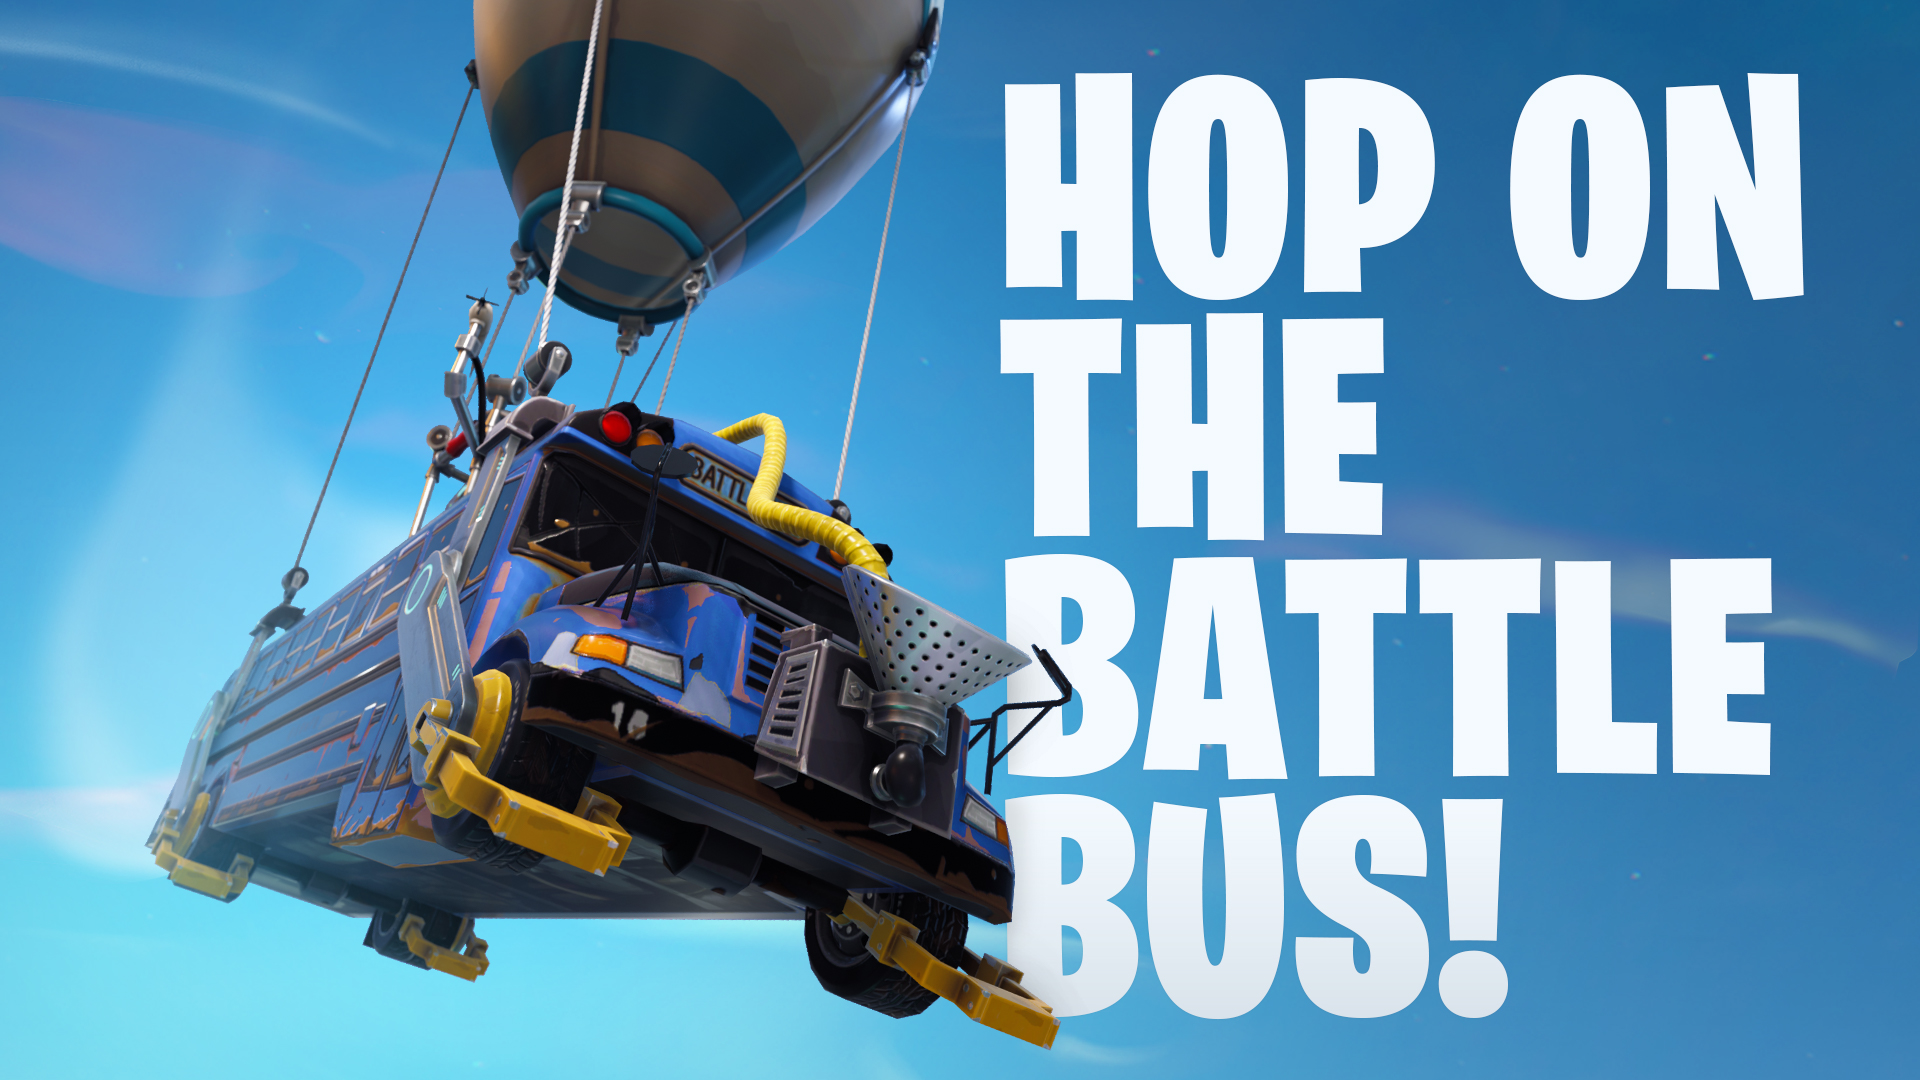 Battle-Bus.jpg